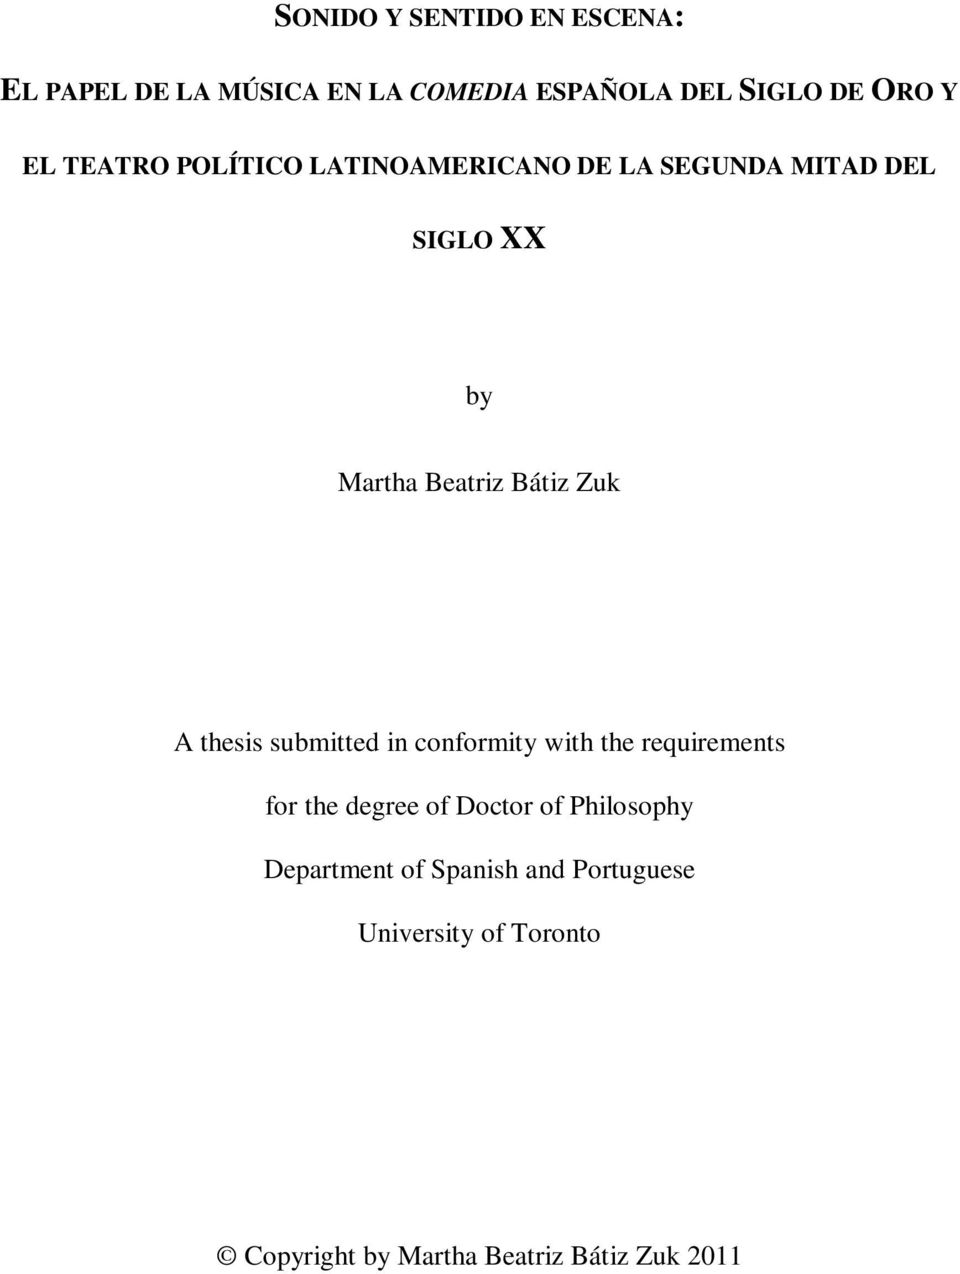 thesis submitted in conformity with the requirements for the degree of Doctor of Philosophy